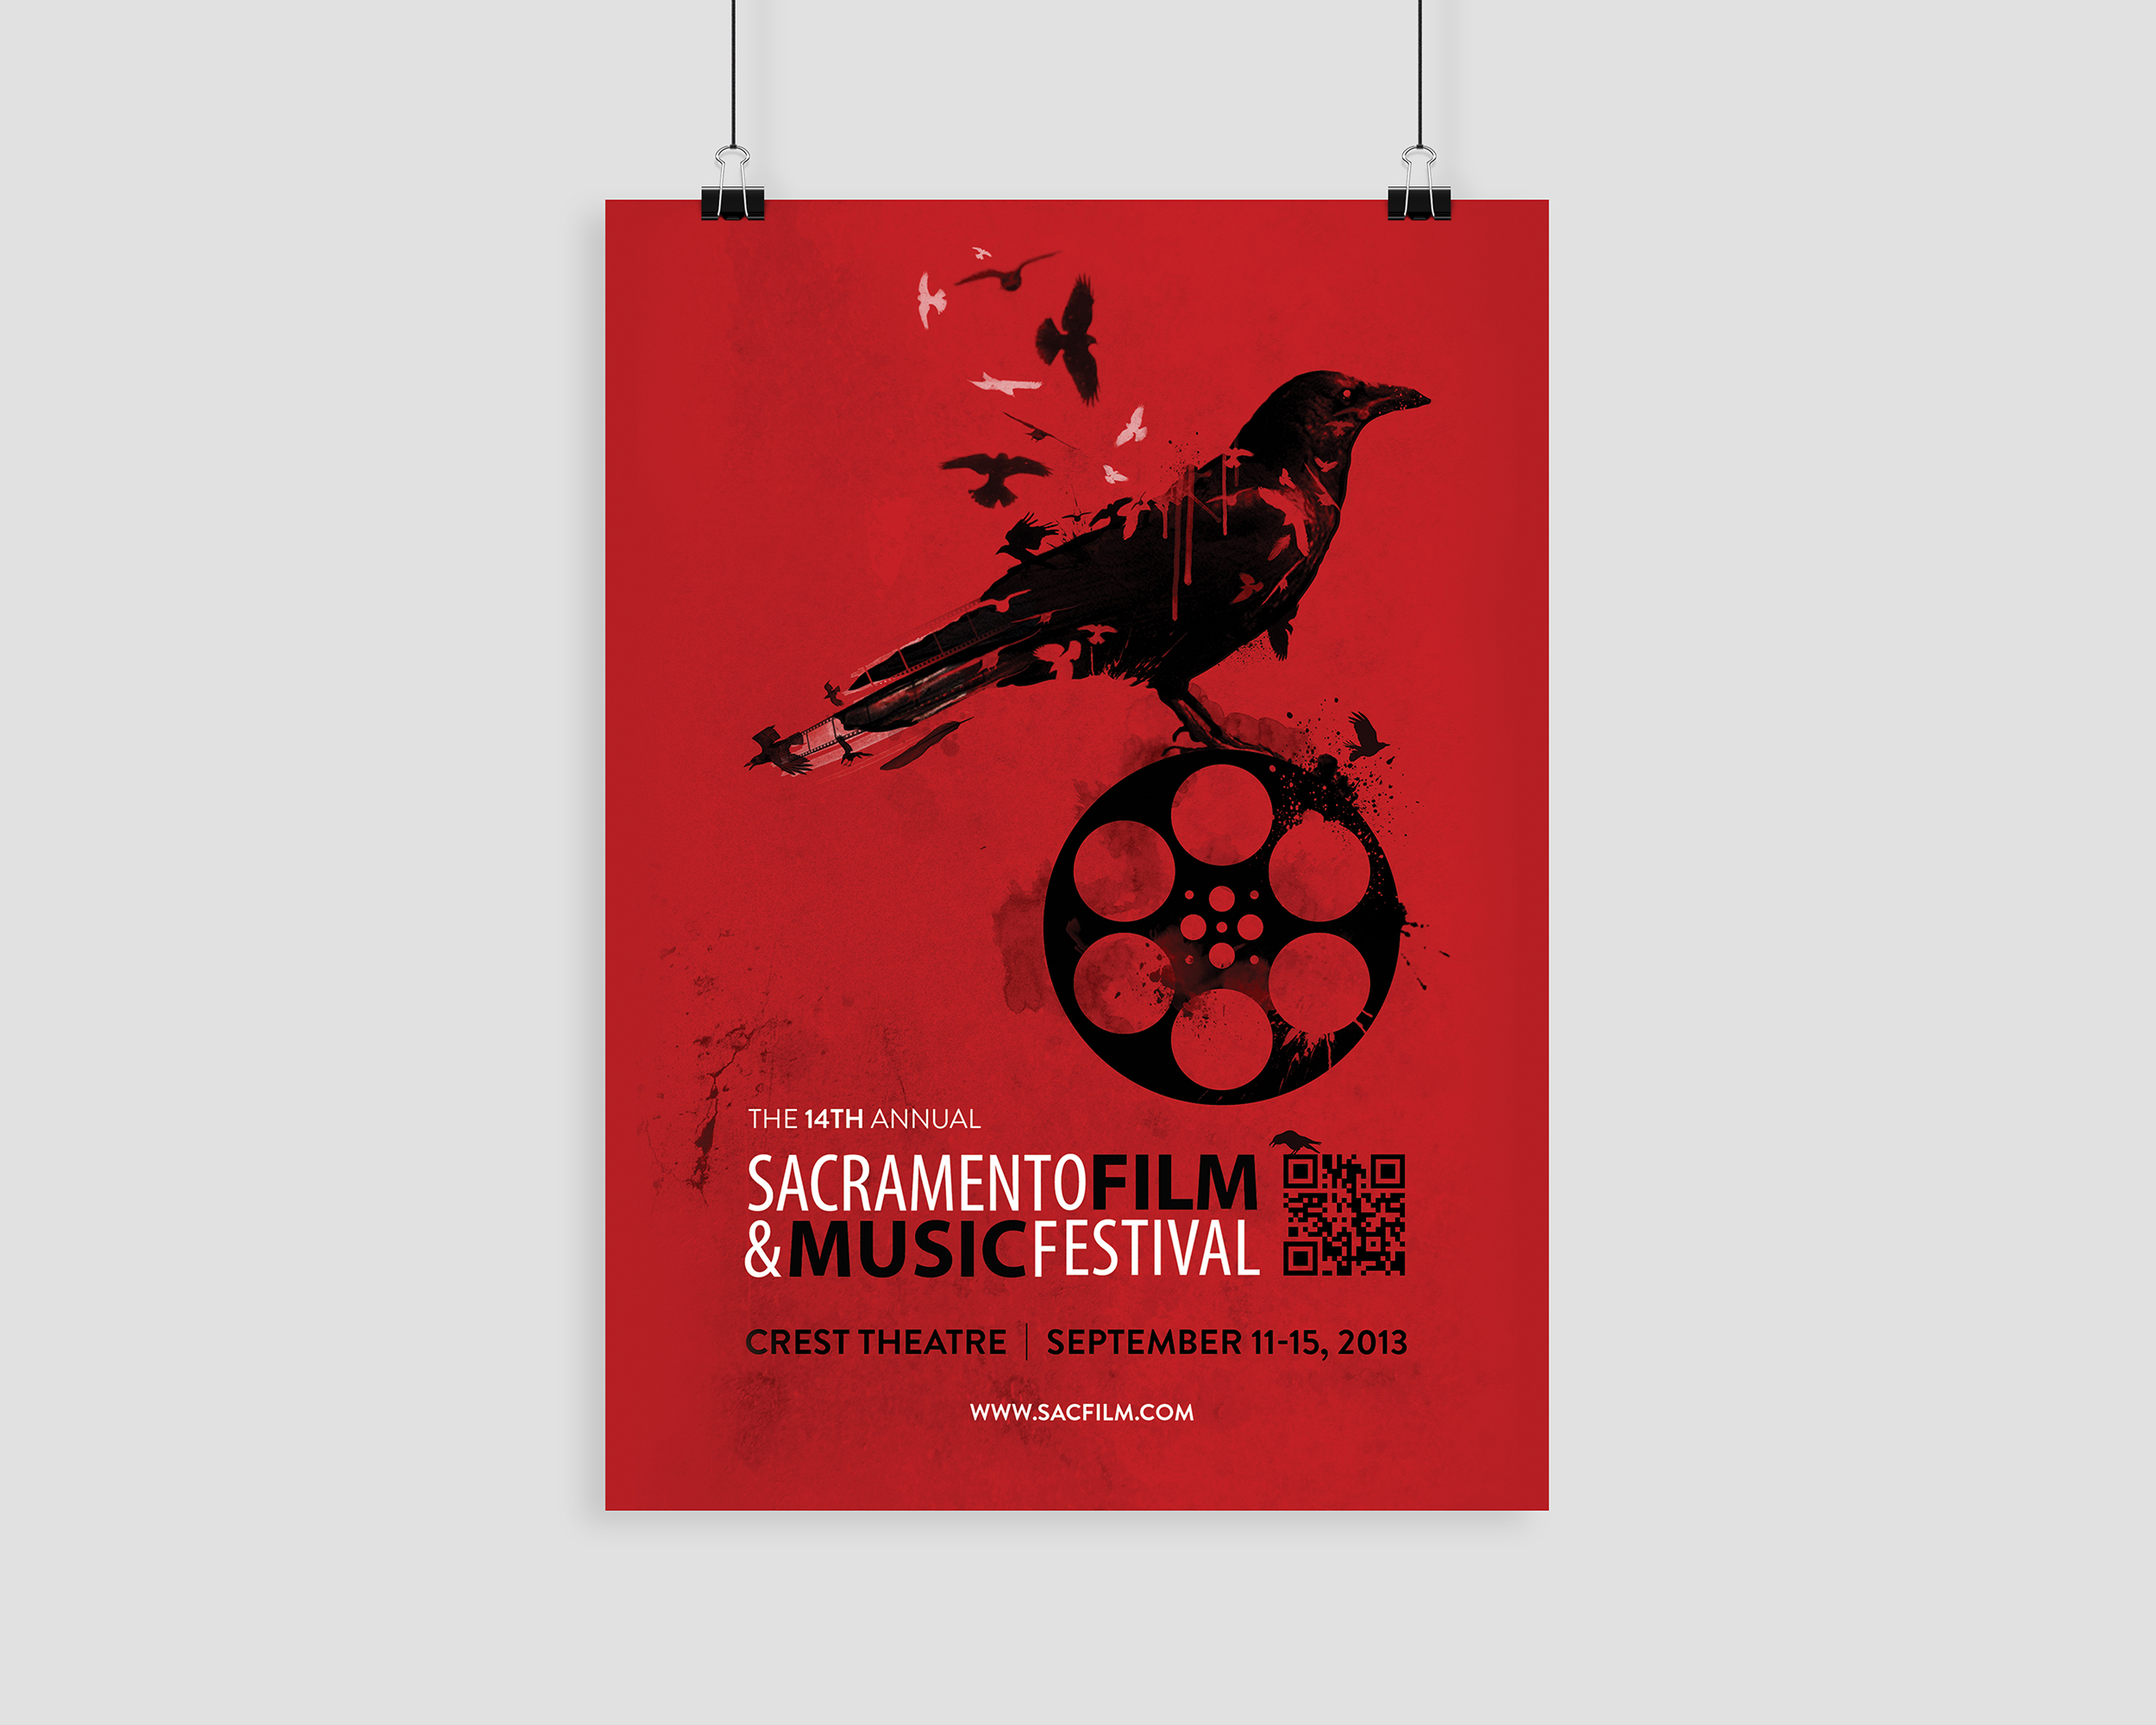 14th Annual Sacramento Film & Music Festival Poster